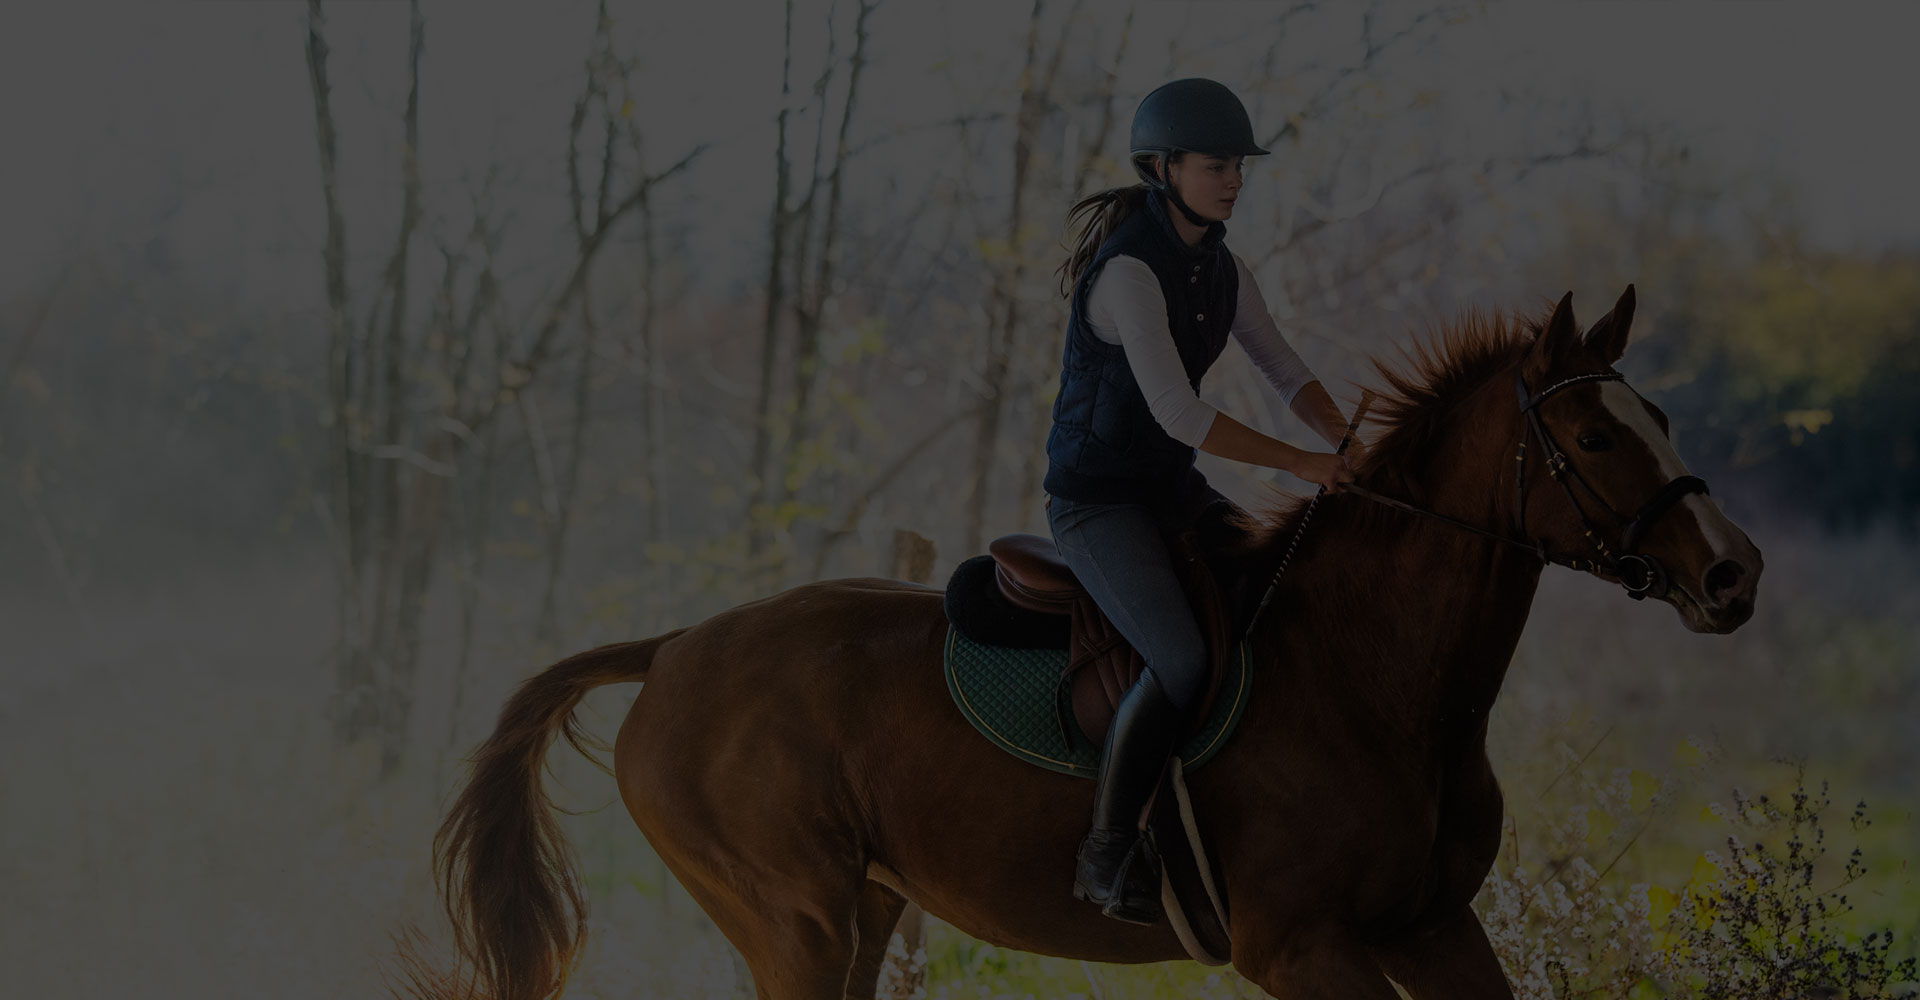 Everything about horse-riding